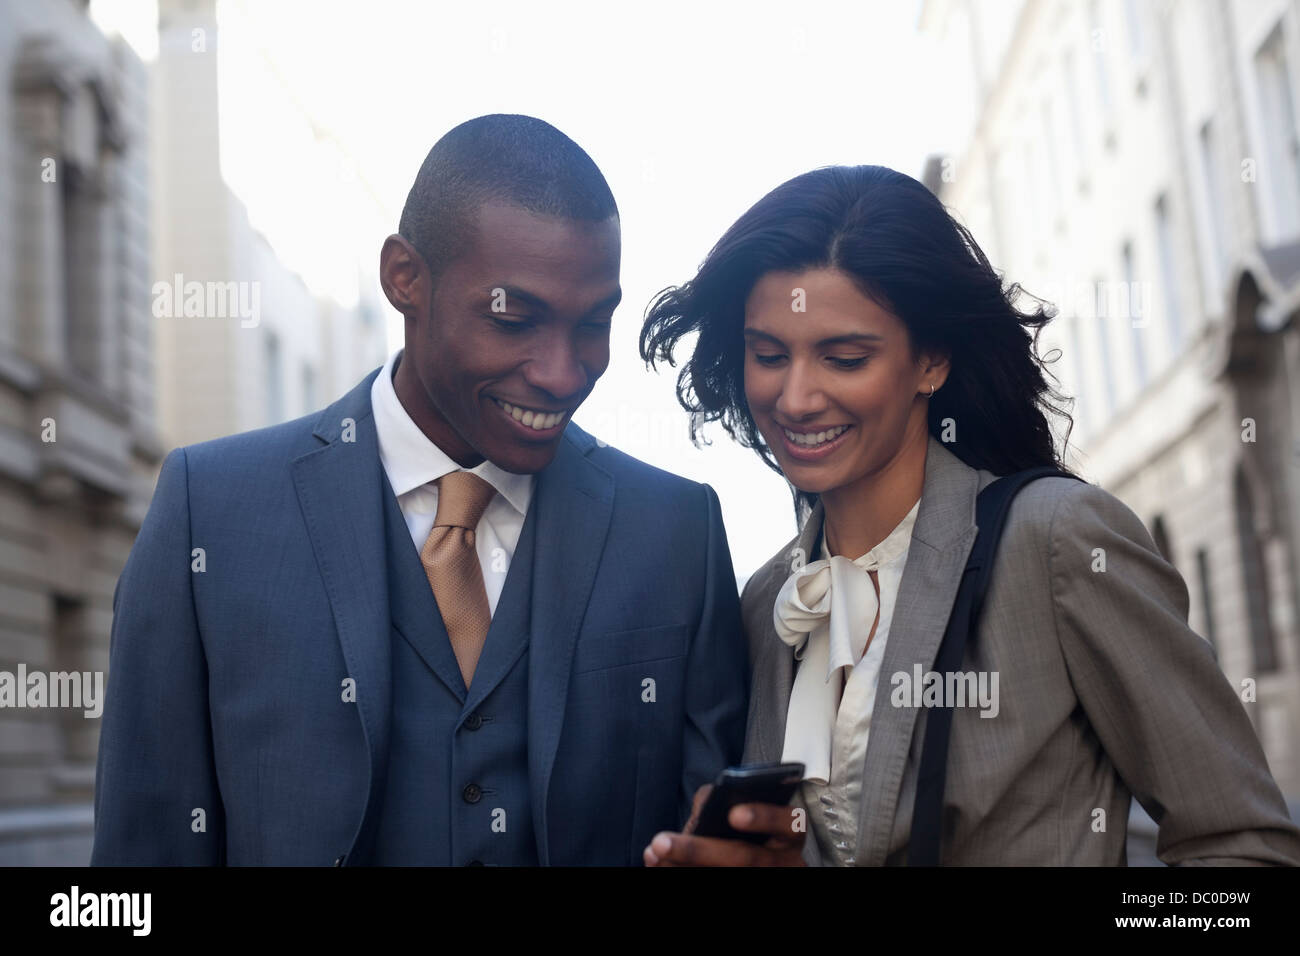 Smiling business people text messaging with cell phone - Stock Image